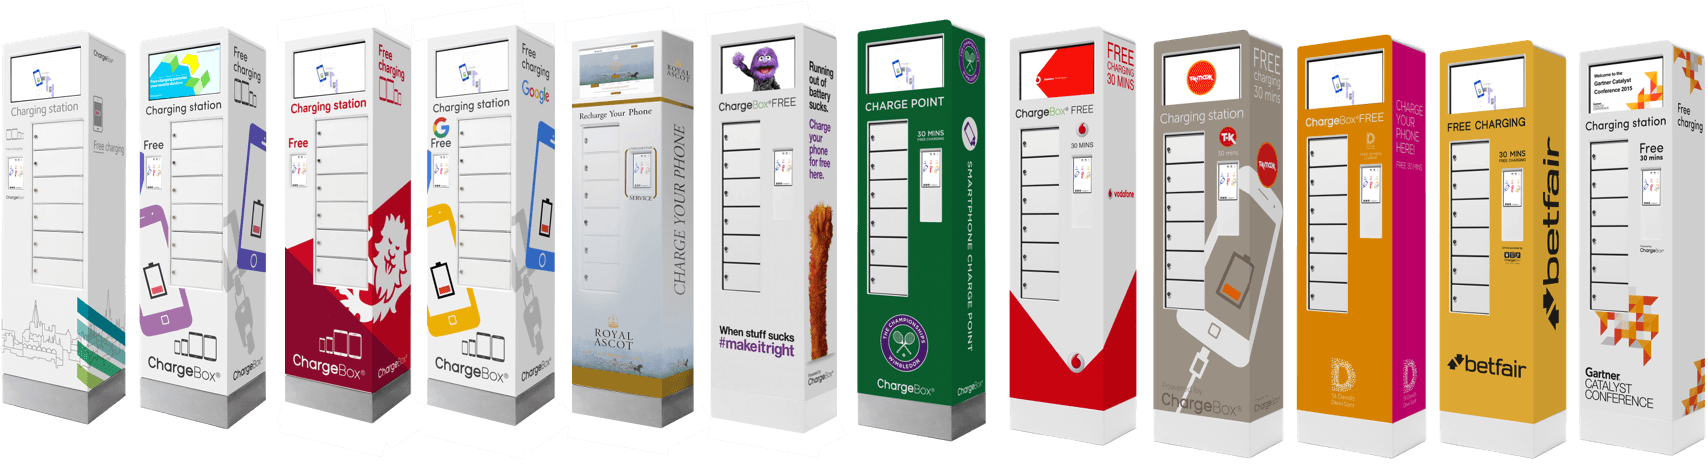 The range of charging stations ChargeBox offers